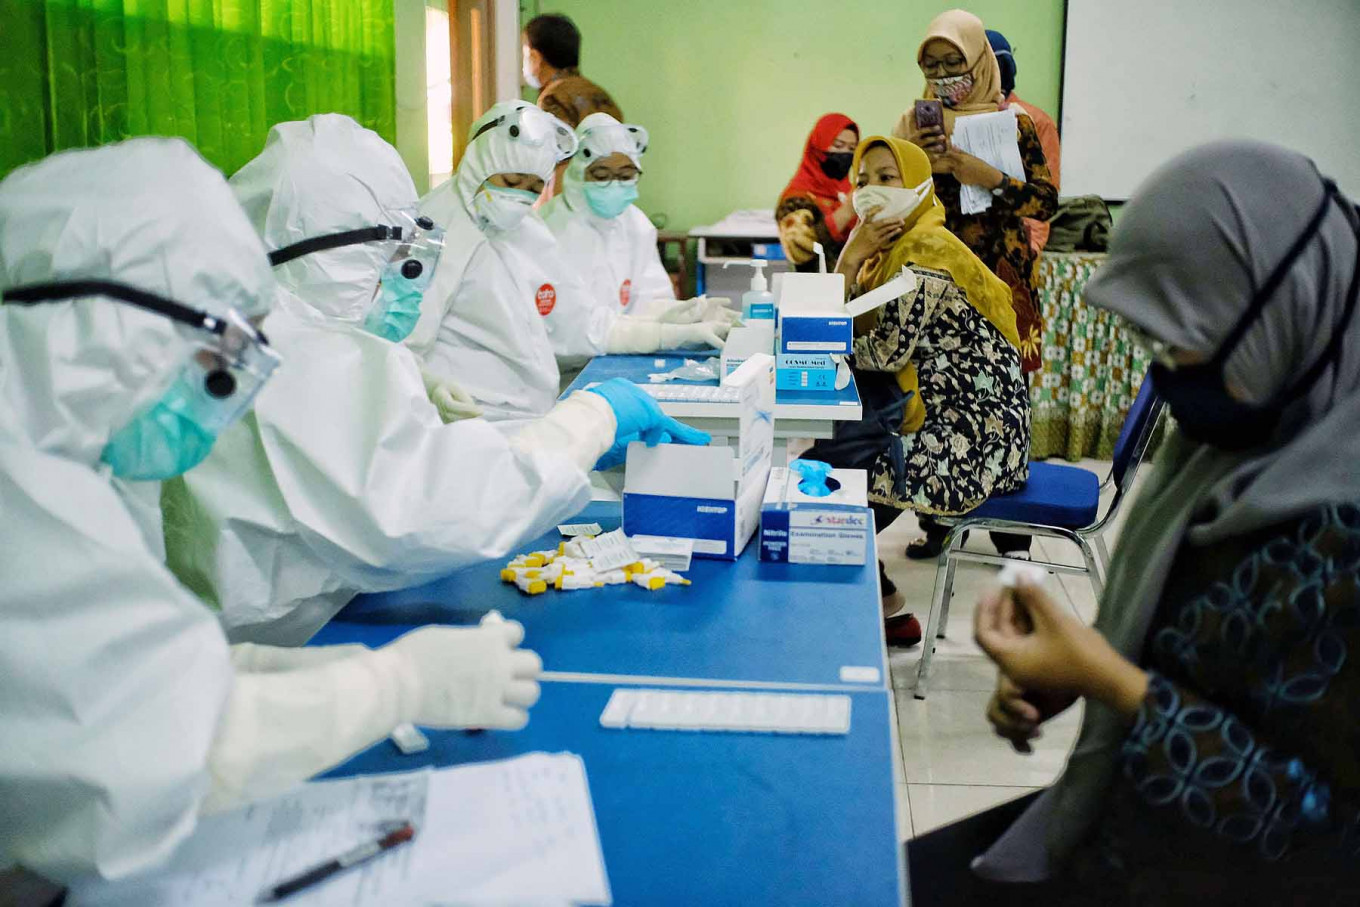 Health workers conduct COVID-19 rapid tests on teachers at SMP 3 state junior high school in South Tangerang, Banten, on Aug. 27. Authorities held rapid tests for middle school teachers in Ciputat, Tangerang, to trace the spread of COVID-19 and prevent further coronavirus outbreaks in the area. JP/Seto Wardhana